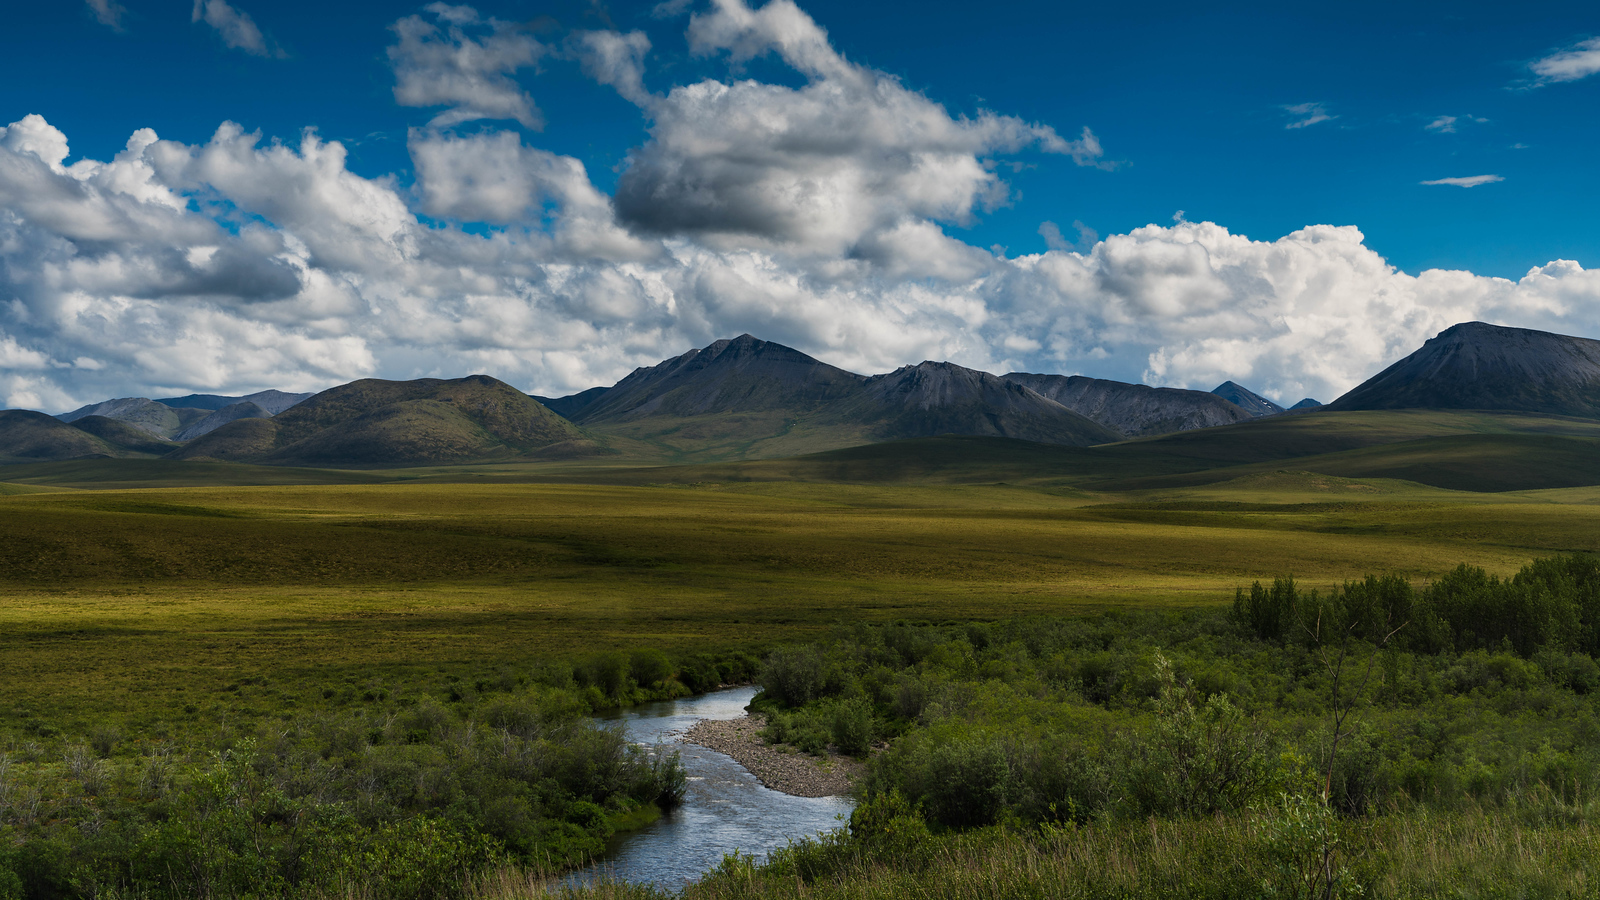 The views just keep getting better on the Dempster Highway